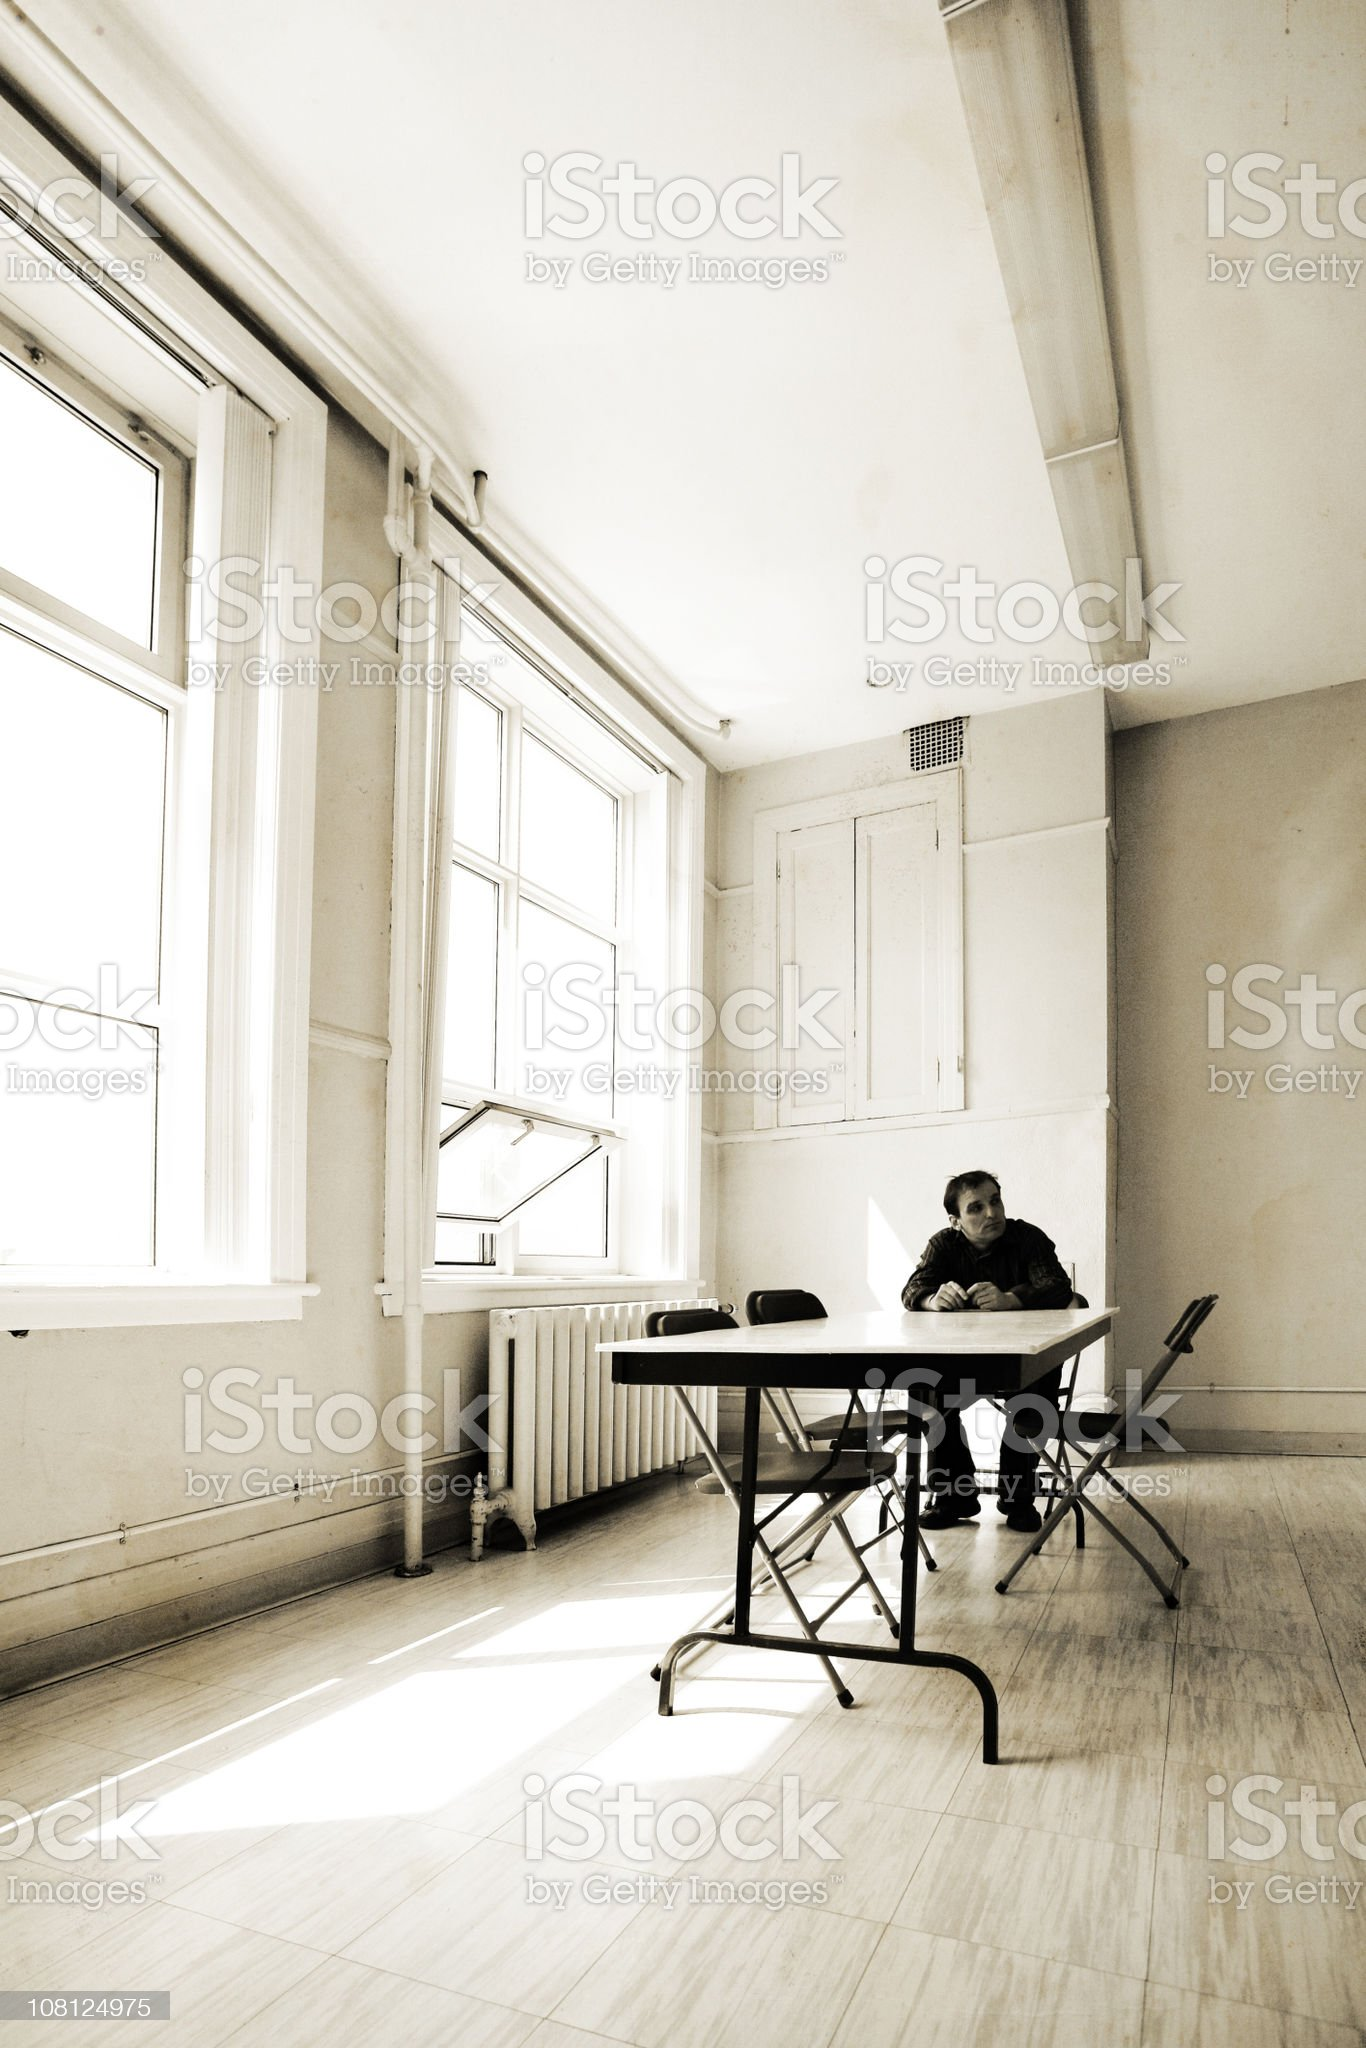 Man Sitting at Empty Table, Sepia Toned royalty-free stock photo